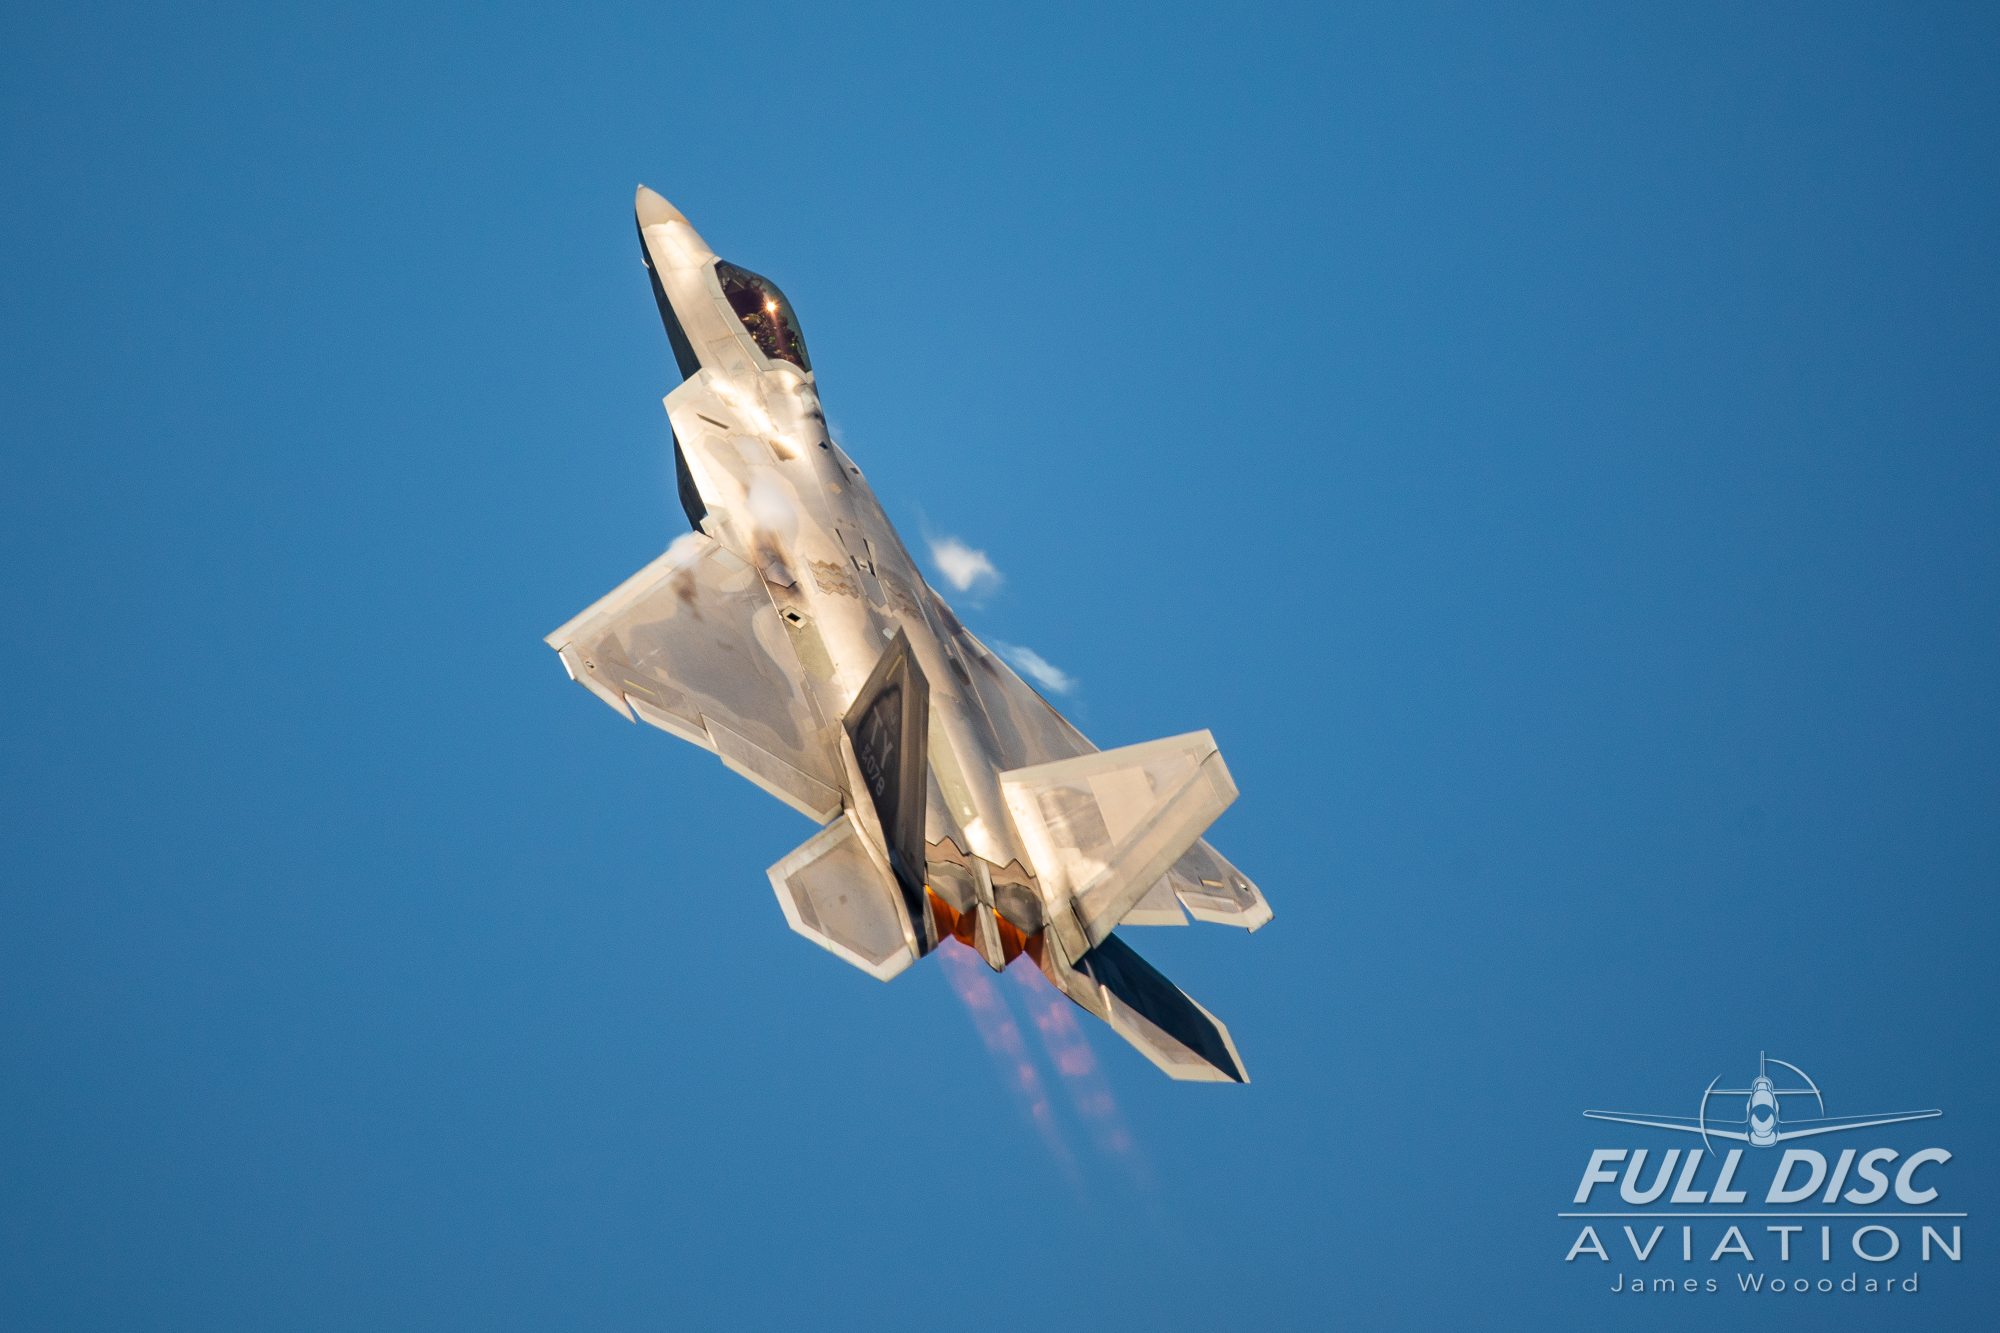 F22_FullDiscAviation_JamesWoodard-April 27, 2019-01-2.jpg